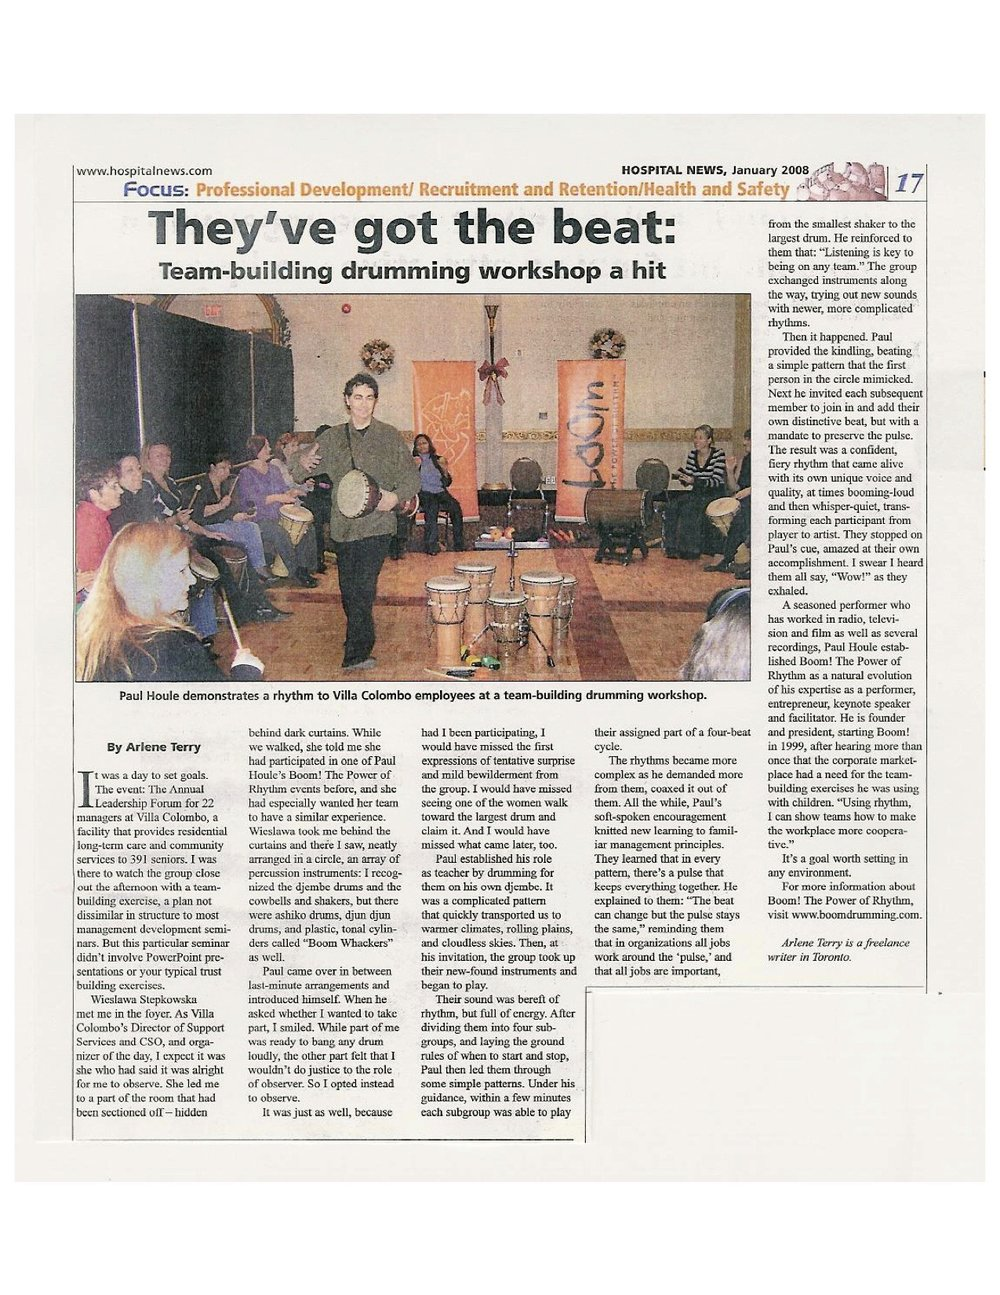 Boom! The Power of Rhythm - Paul Houle - They've Got the Beat - Hospital News copy.jpg